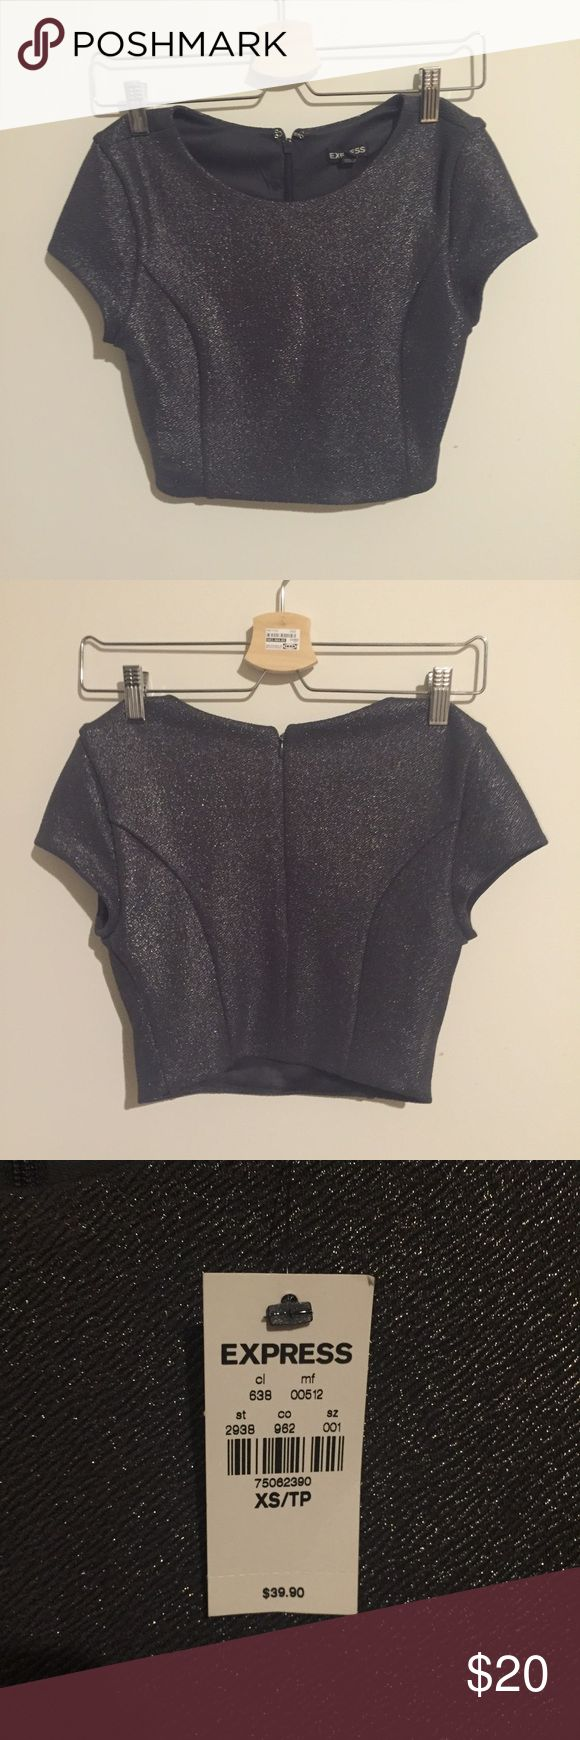 💖NWT💖 Express Metallic Crop Top in Gunmetal Brand new crop top from express. It's a dark grey. Refer to the fifth picture for sizing. I love it but it doesn't fit and it's time to find it a new home! 💖 Express Tops Crop Tops